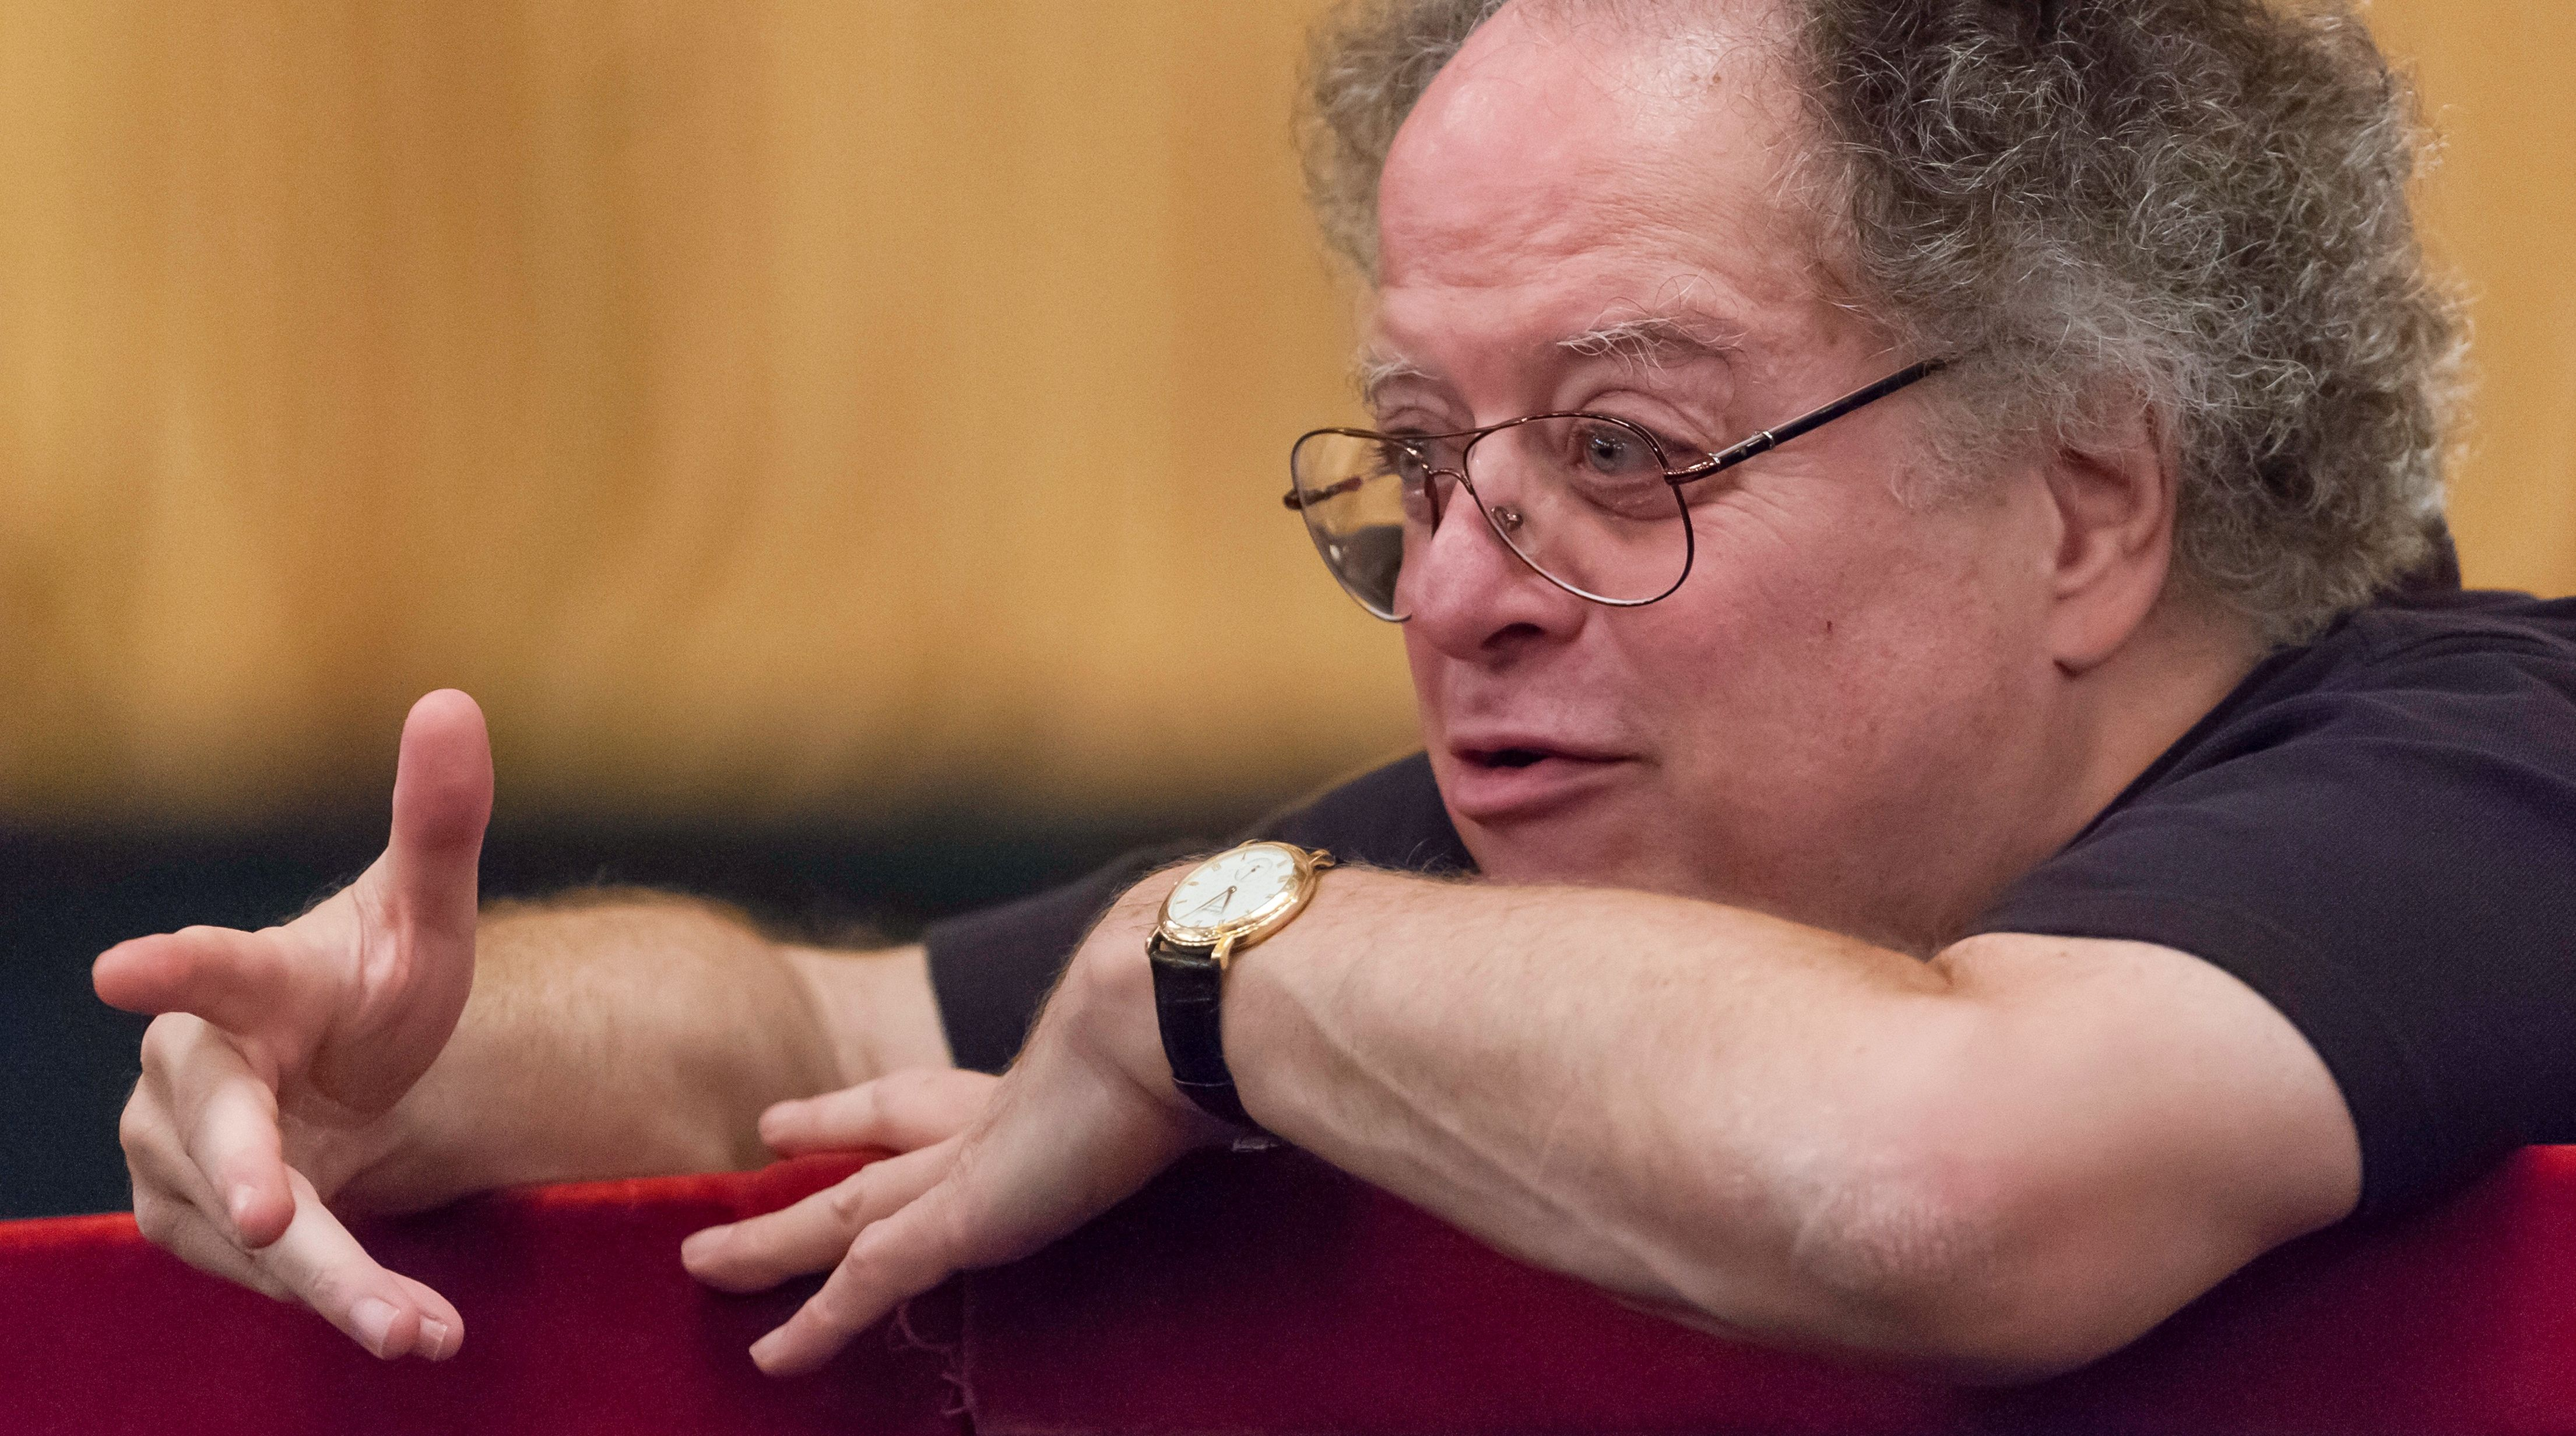 Should James Levine's Alleged Sexual Abuse Make Us Reconsider His Music?